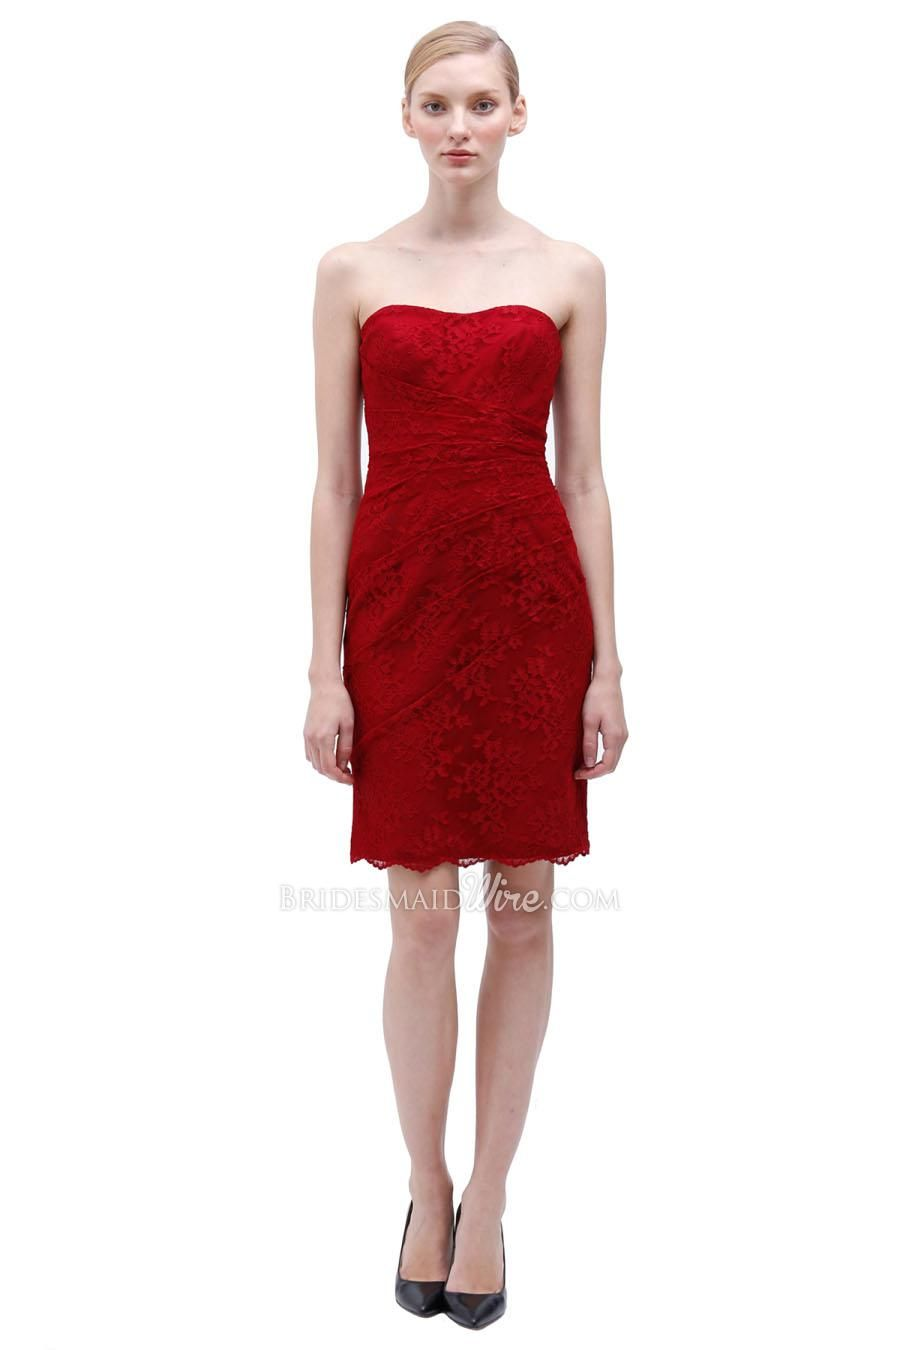 Gorgeous sheath knee length strapless red lace bridesmaid dress gorgeous sheath knee length strapless red lace bridesmaid dress ombrellifo Image collections